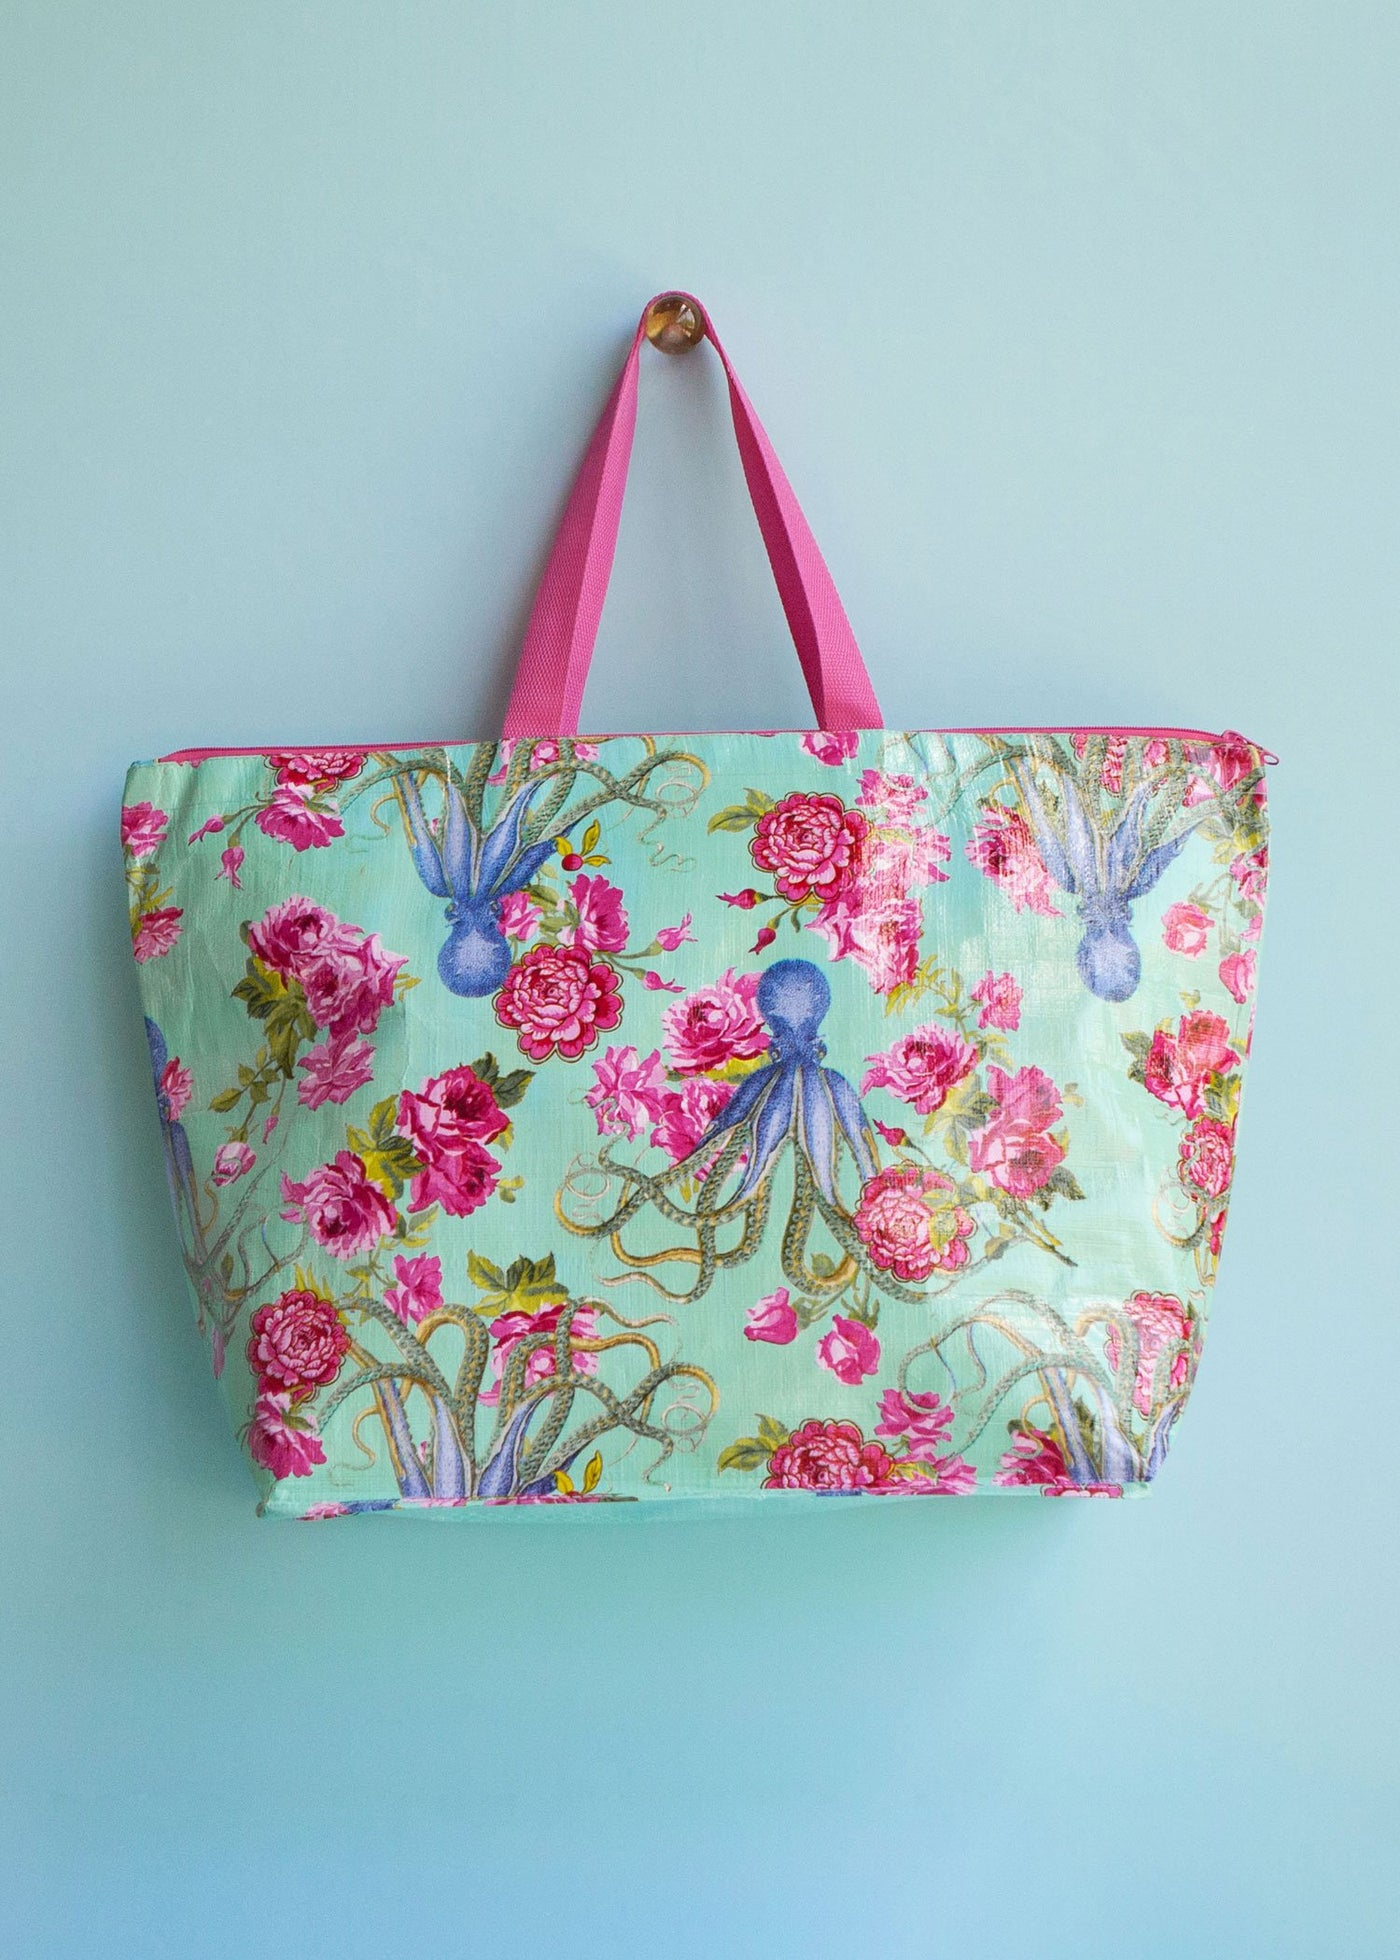 20,000 Flowers Under the Sea Large Tote